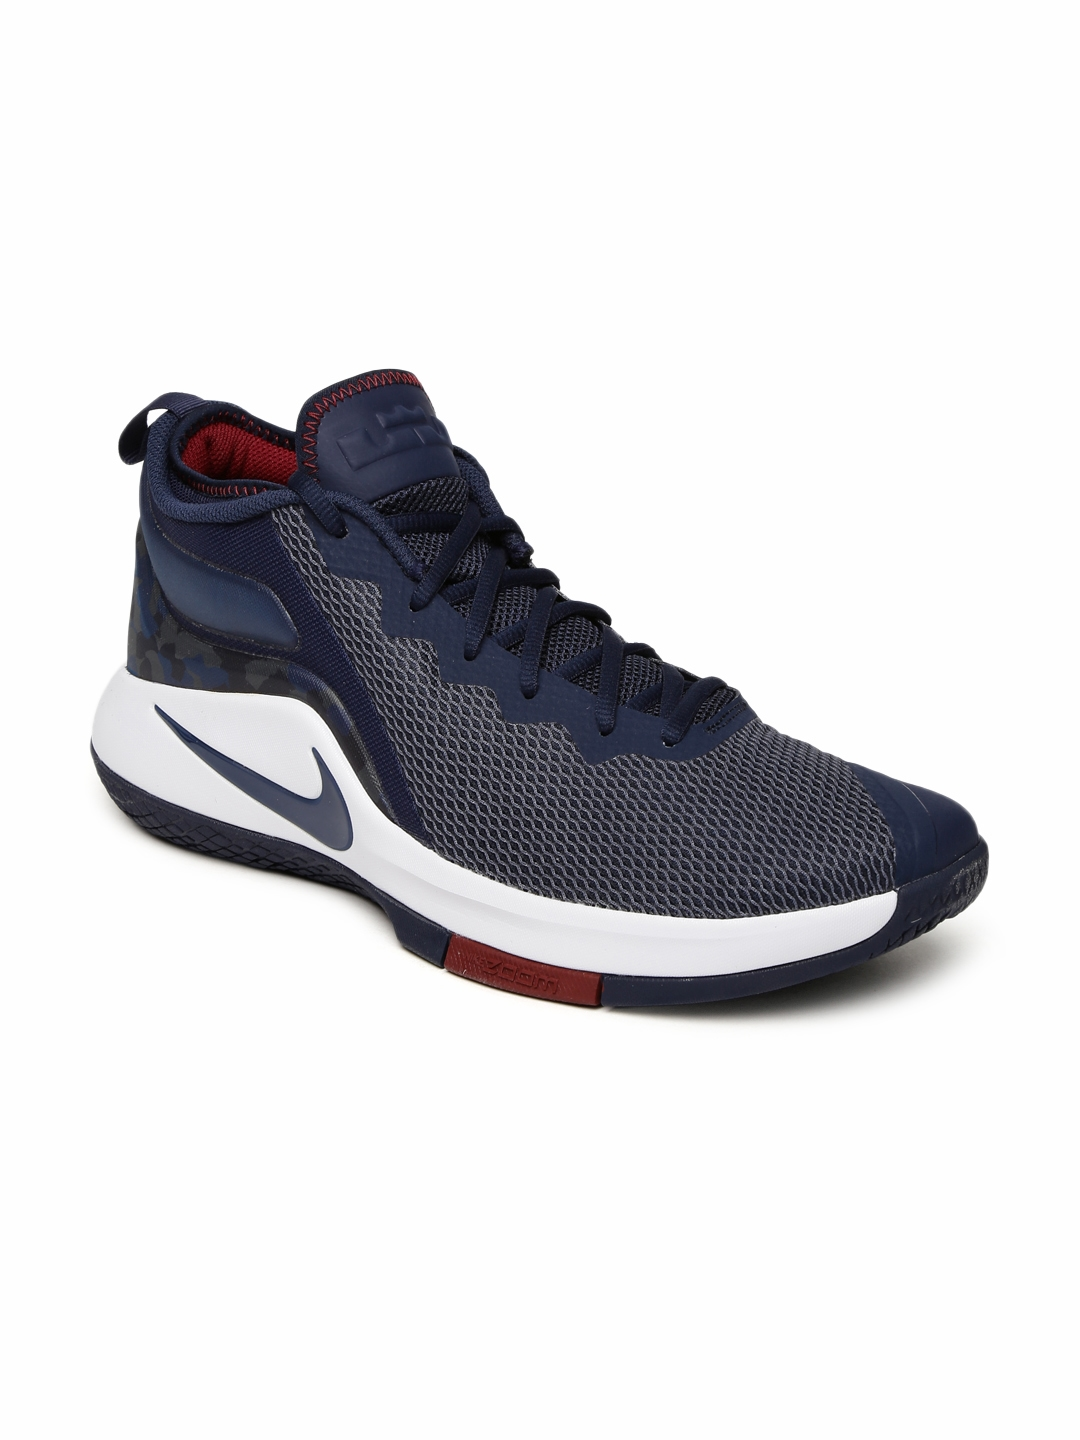 1ff8e77ddf19d Buy Nike Men Navy NBA LEBRON JAMES WITNESS II Mid Top Basketball ...